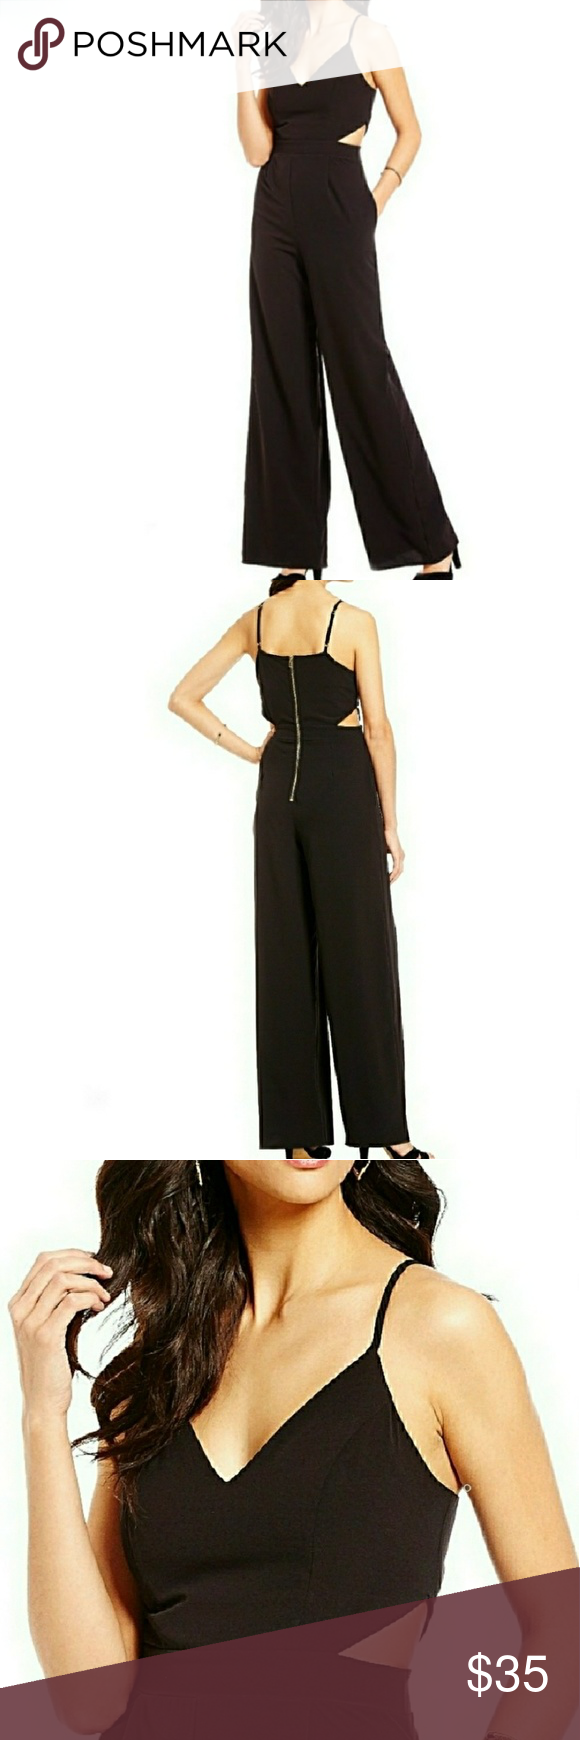 5bfc5480434 NWT GIANNI BINI WIDE LEG JUMPSUIT BLACK Boutique